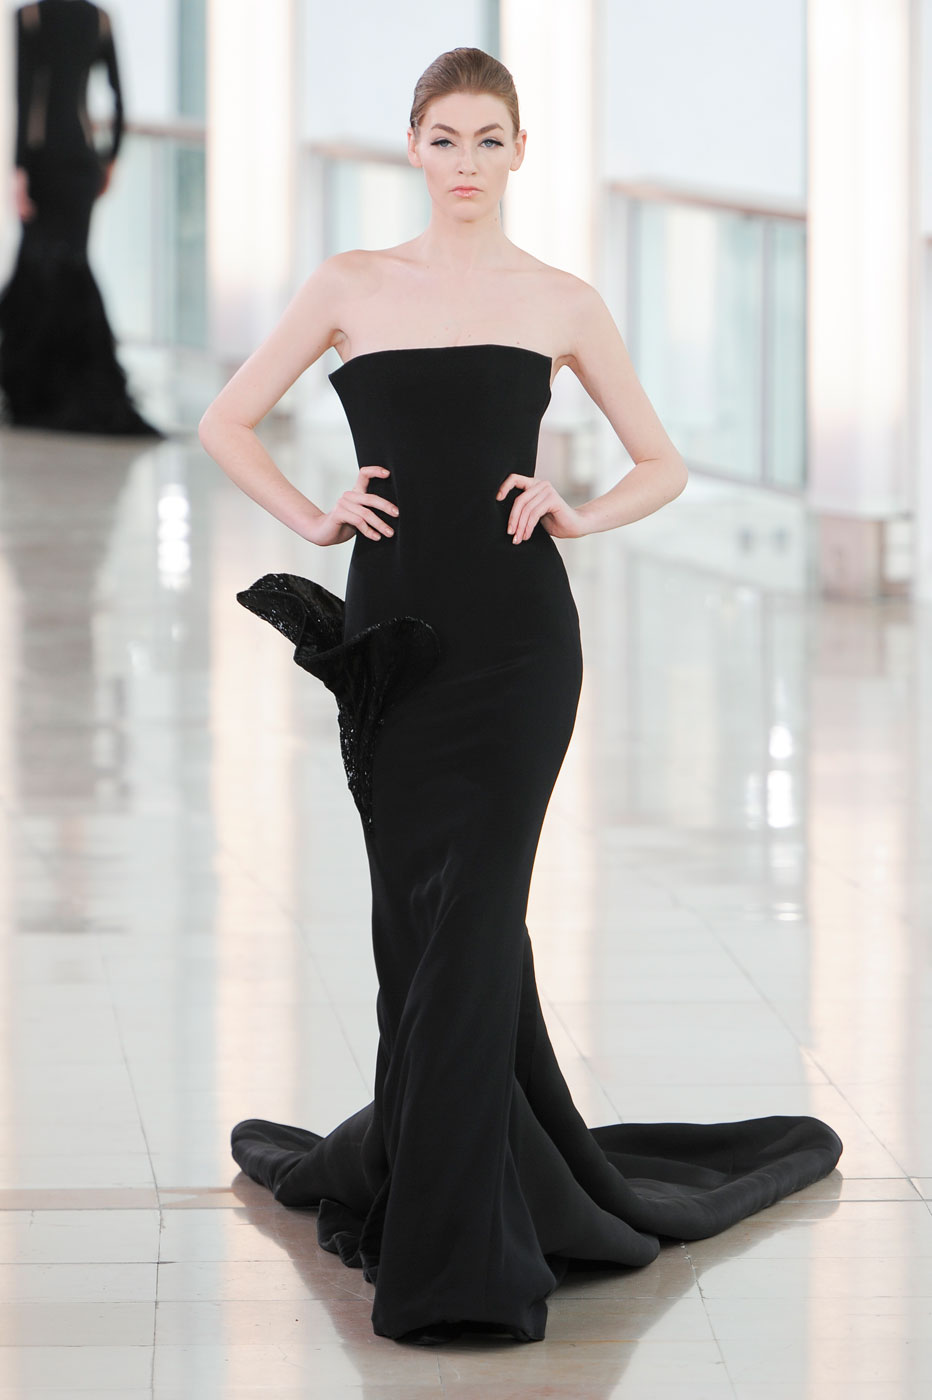 stephane-rolland-fashion-runway-show-haute-couture-paris-spring-2015-the-impression-34